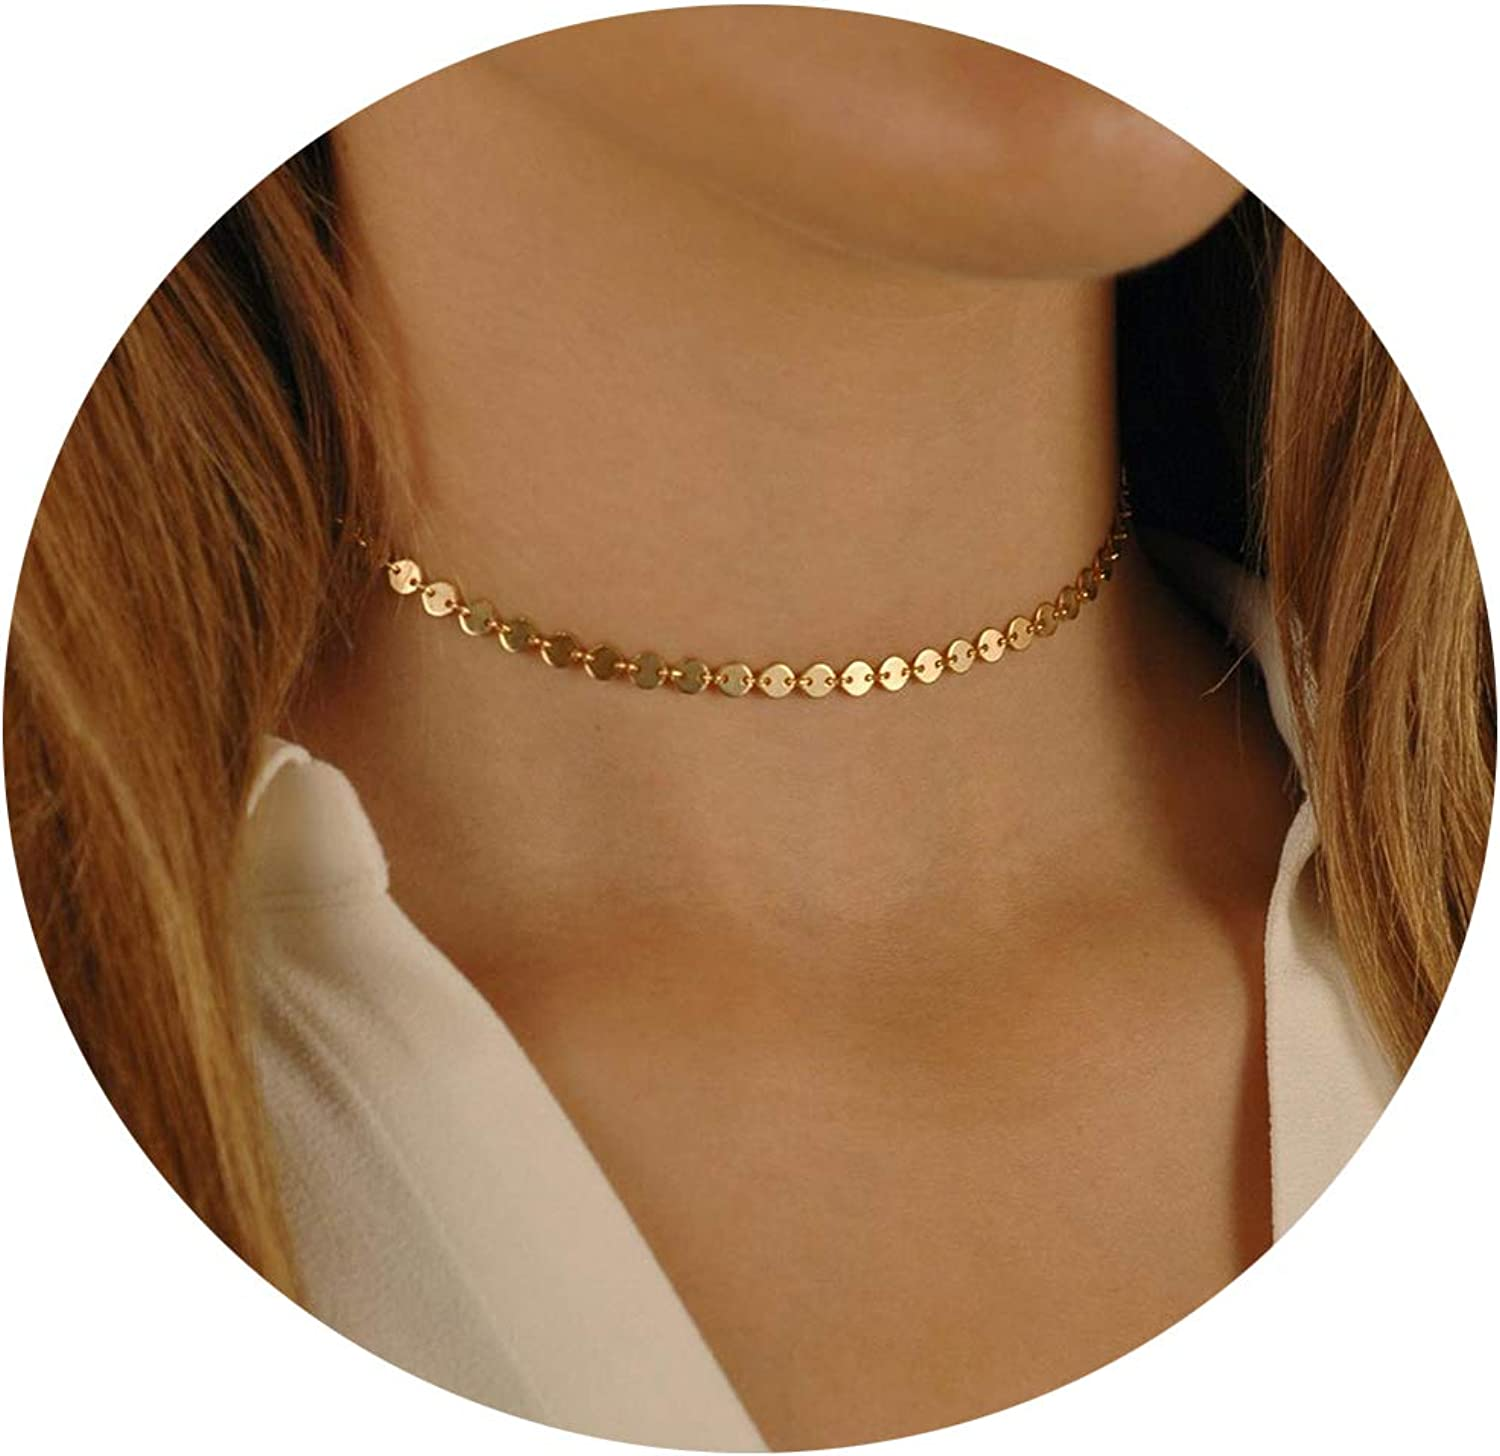 Lcherry Dainty Star Choker Necklace Coin Necklace Circle Disc Pendant Necklace for Women 14K Real Gold Plated